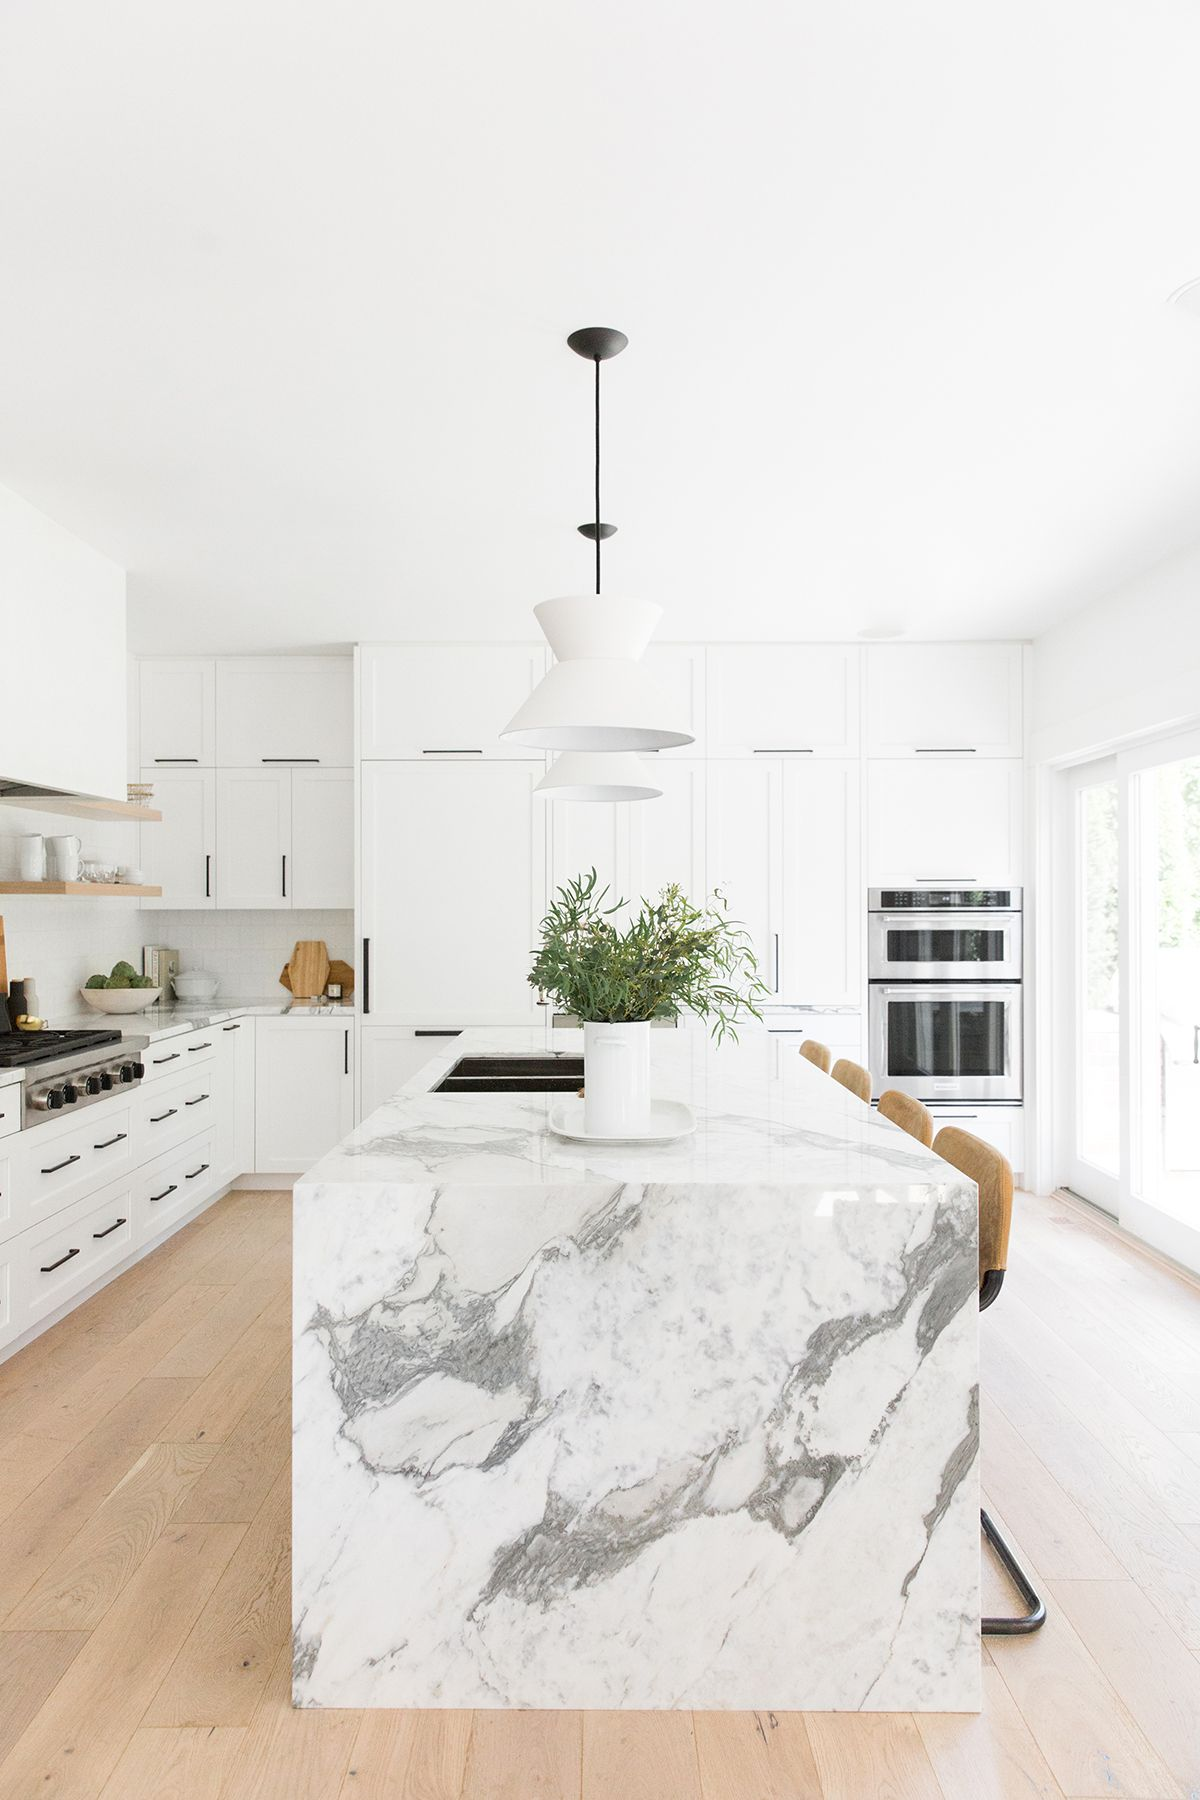 Light, natural, modern white kitchen with leather stools and a thick marble island, natural wood open shelving, concrete hood | Studio McGee Design Blog